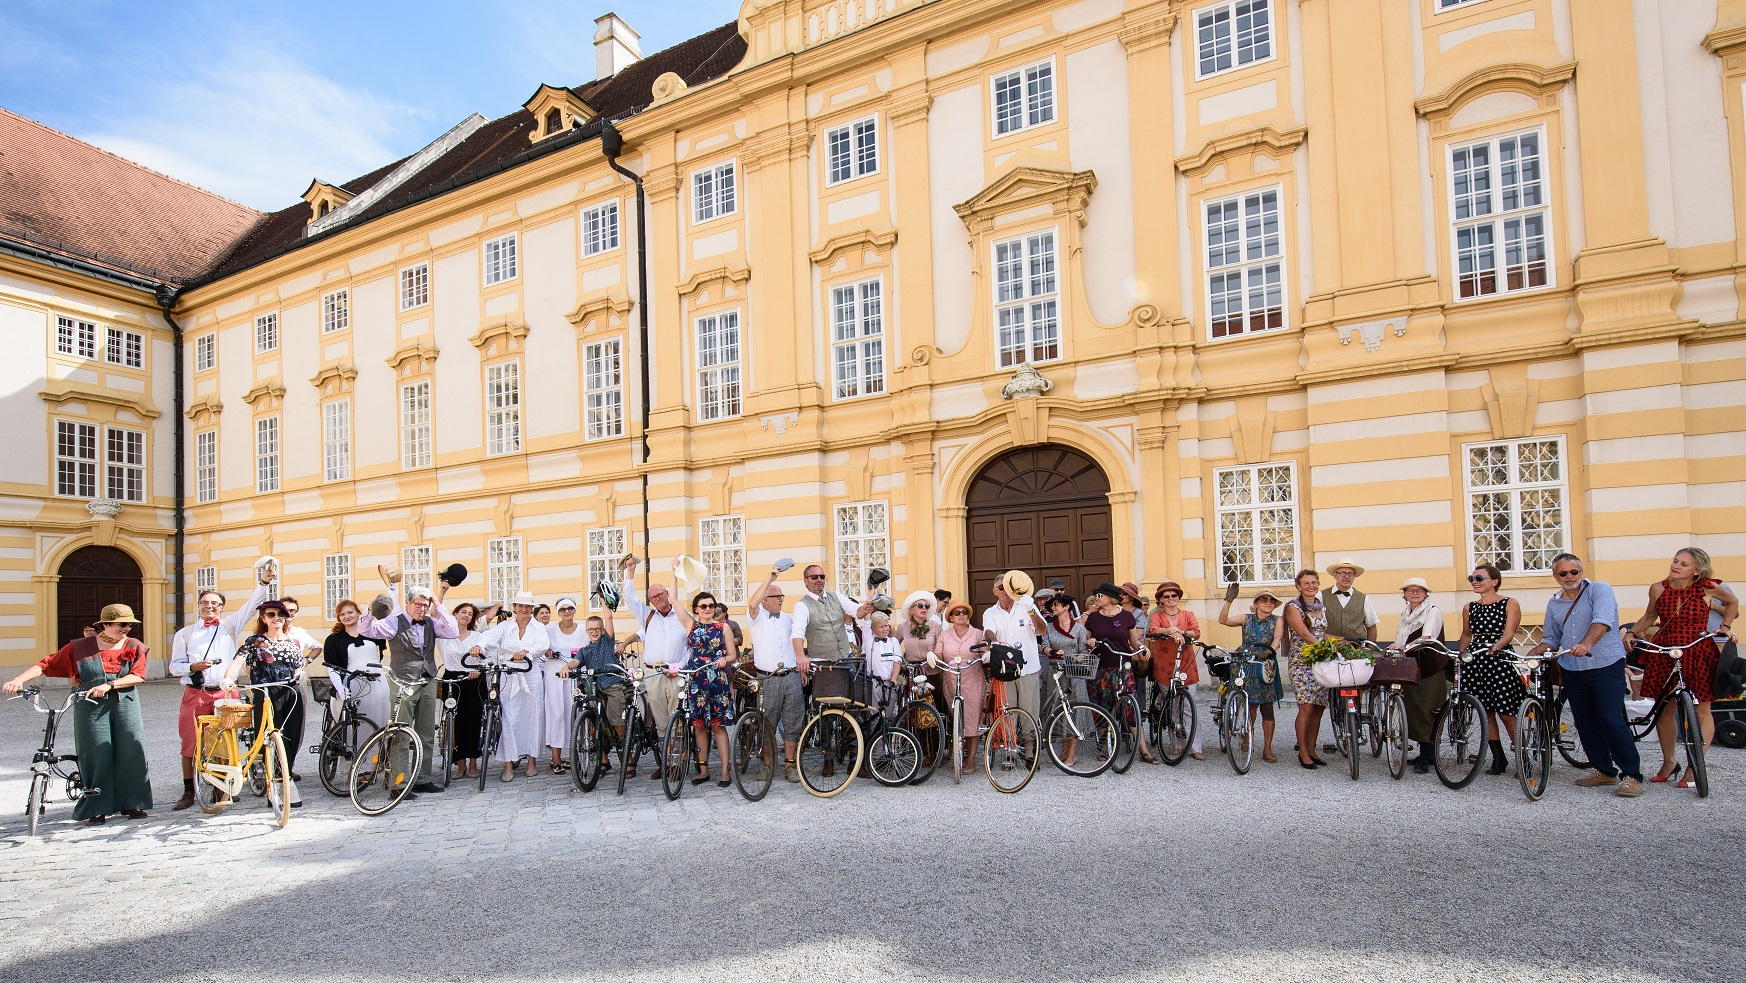 Tweed Ride der Radlobby Melk am 3. September 2016 | Foto: Radlobby Melk